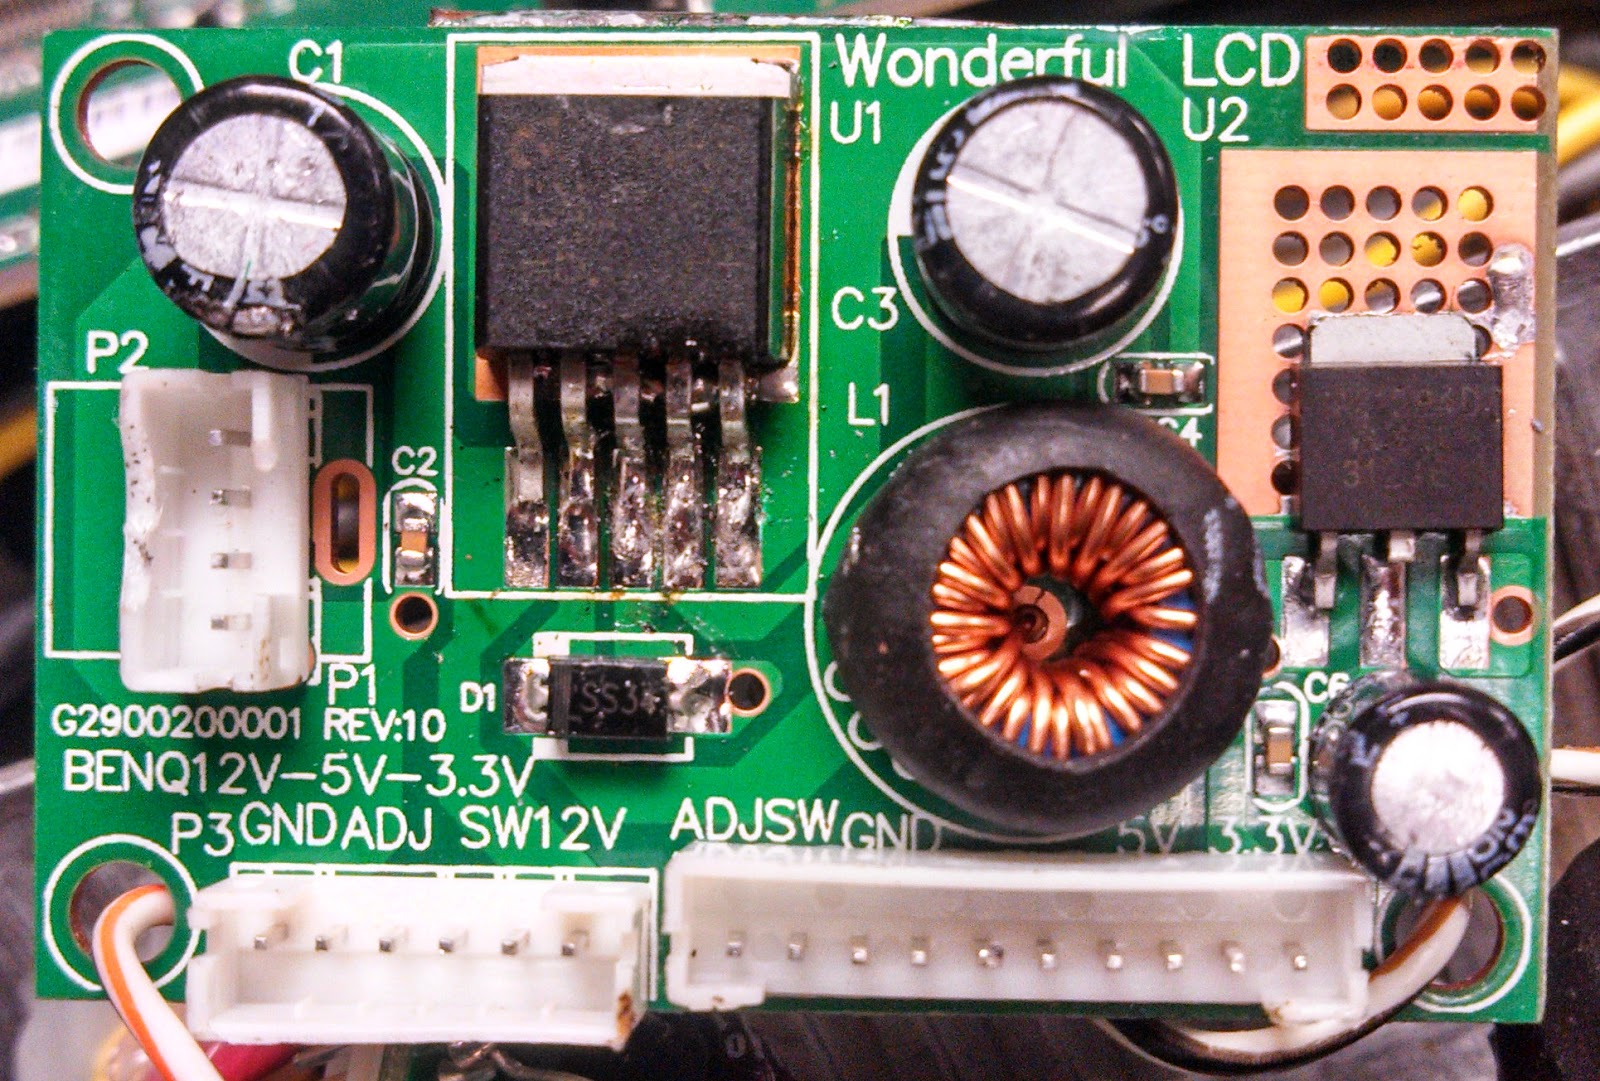 Ka7oeis Blog A Quiet 5 Volt Usb Car Power Supply Picture Of Variable Voltage Regulator Filtered Linear The Dc To Converter Step Down Led Module 3a Obtained From Evilbay Ignore Slightly Messy Soldering That